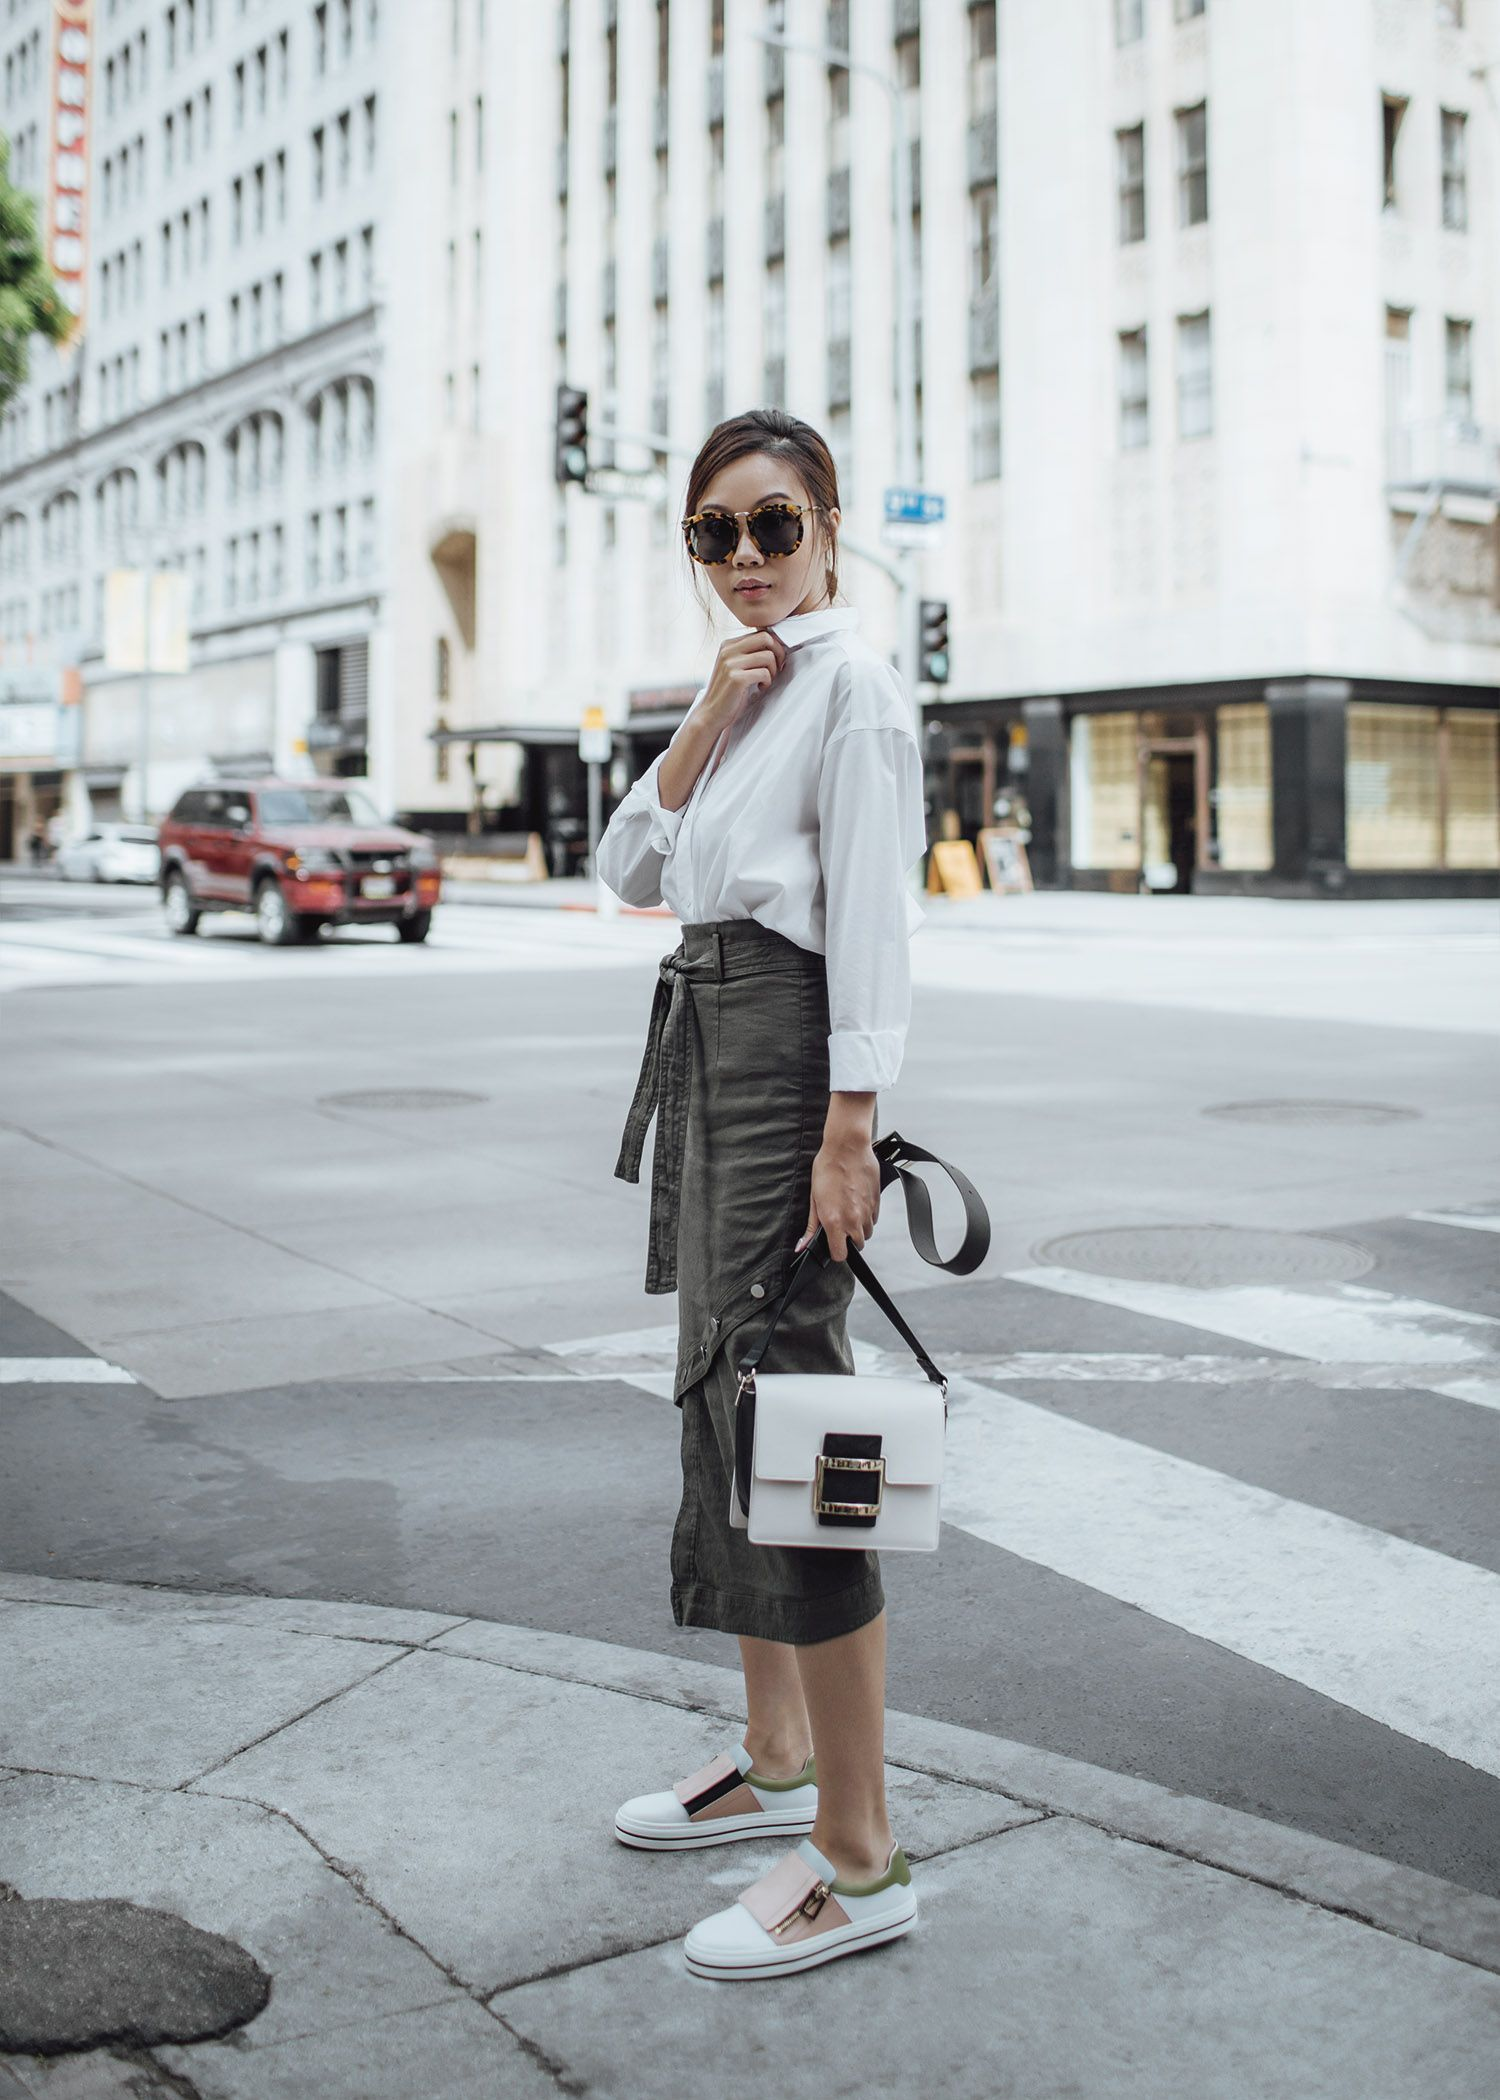 Midi skirt outfit Street style fashion blogger influencer Jenny Tsang of  Tsangtastic wearing white button down 8286145fc0